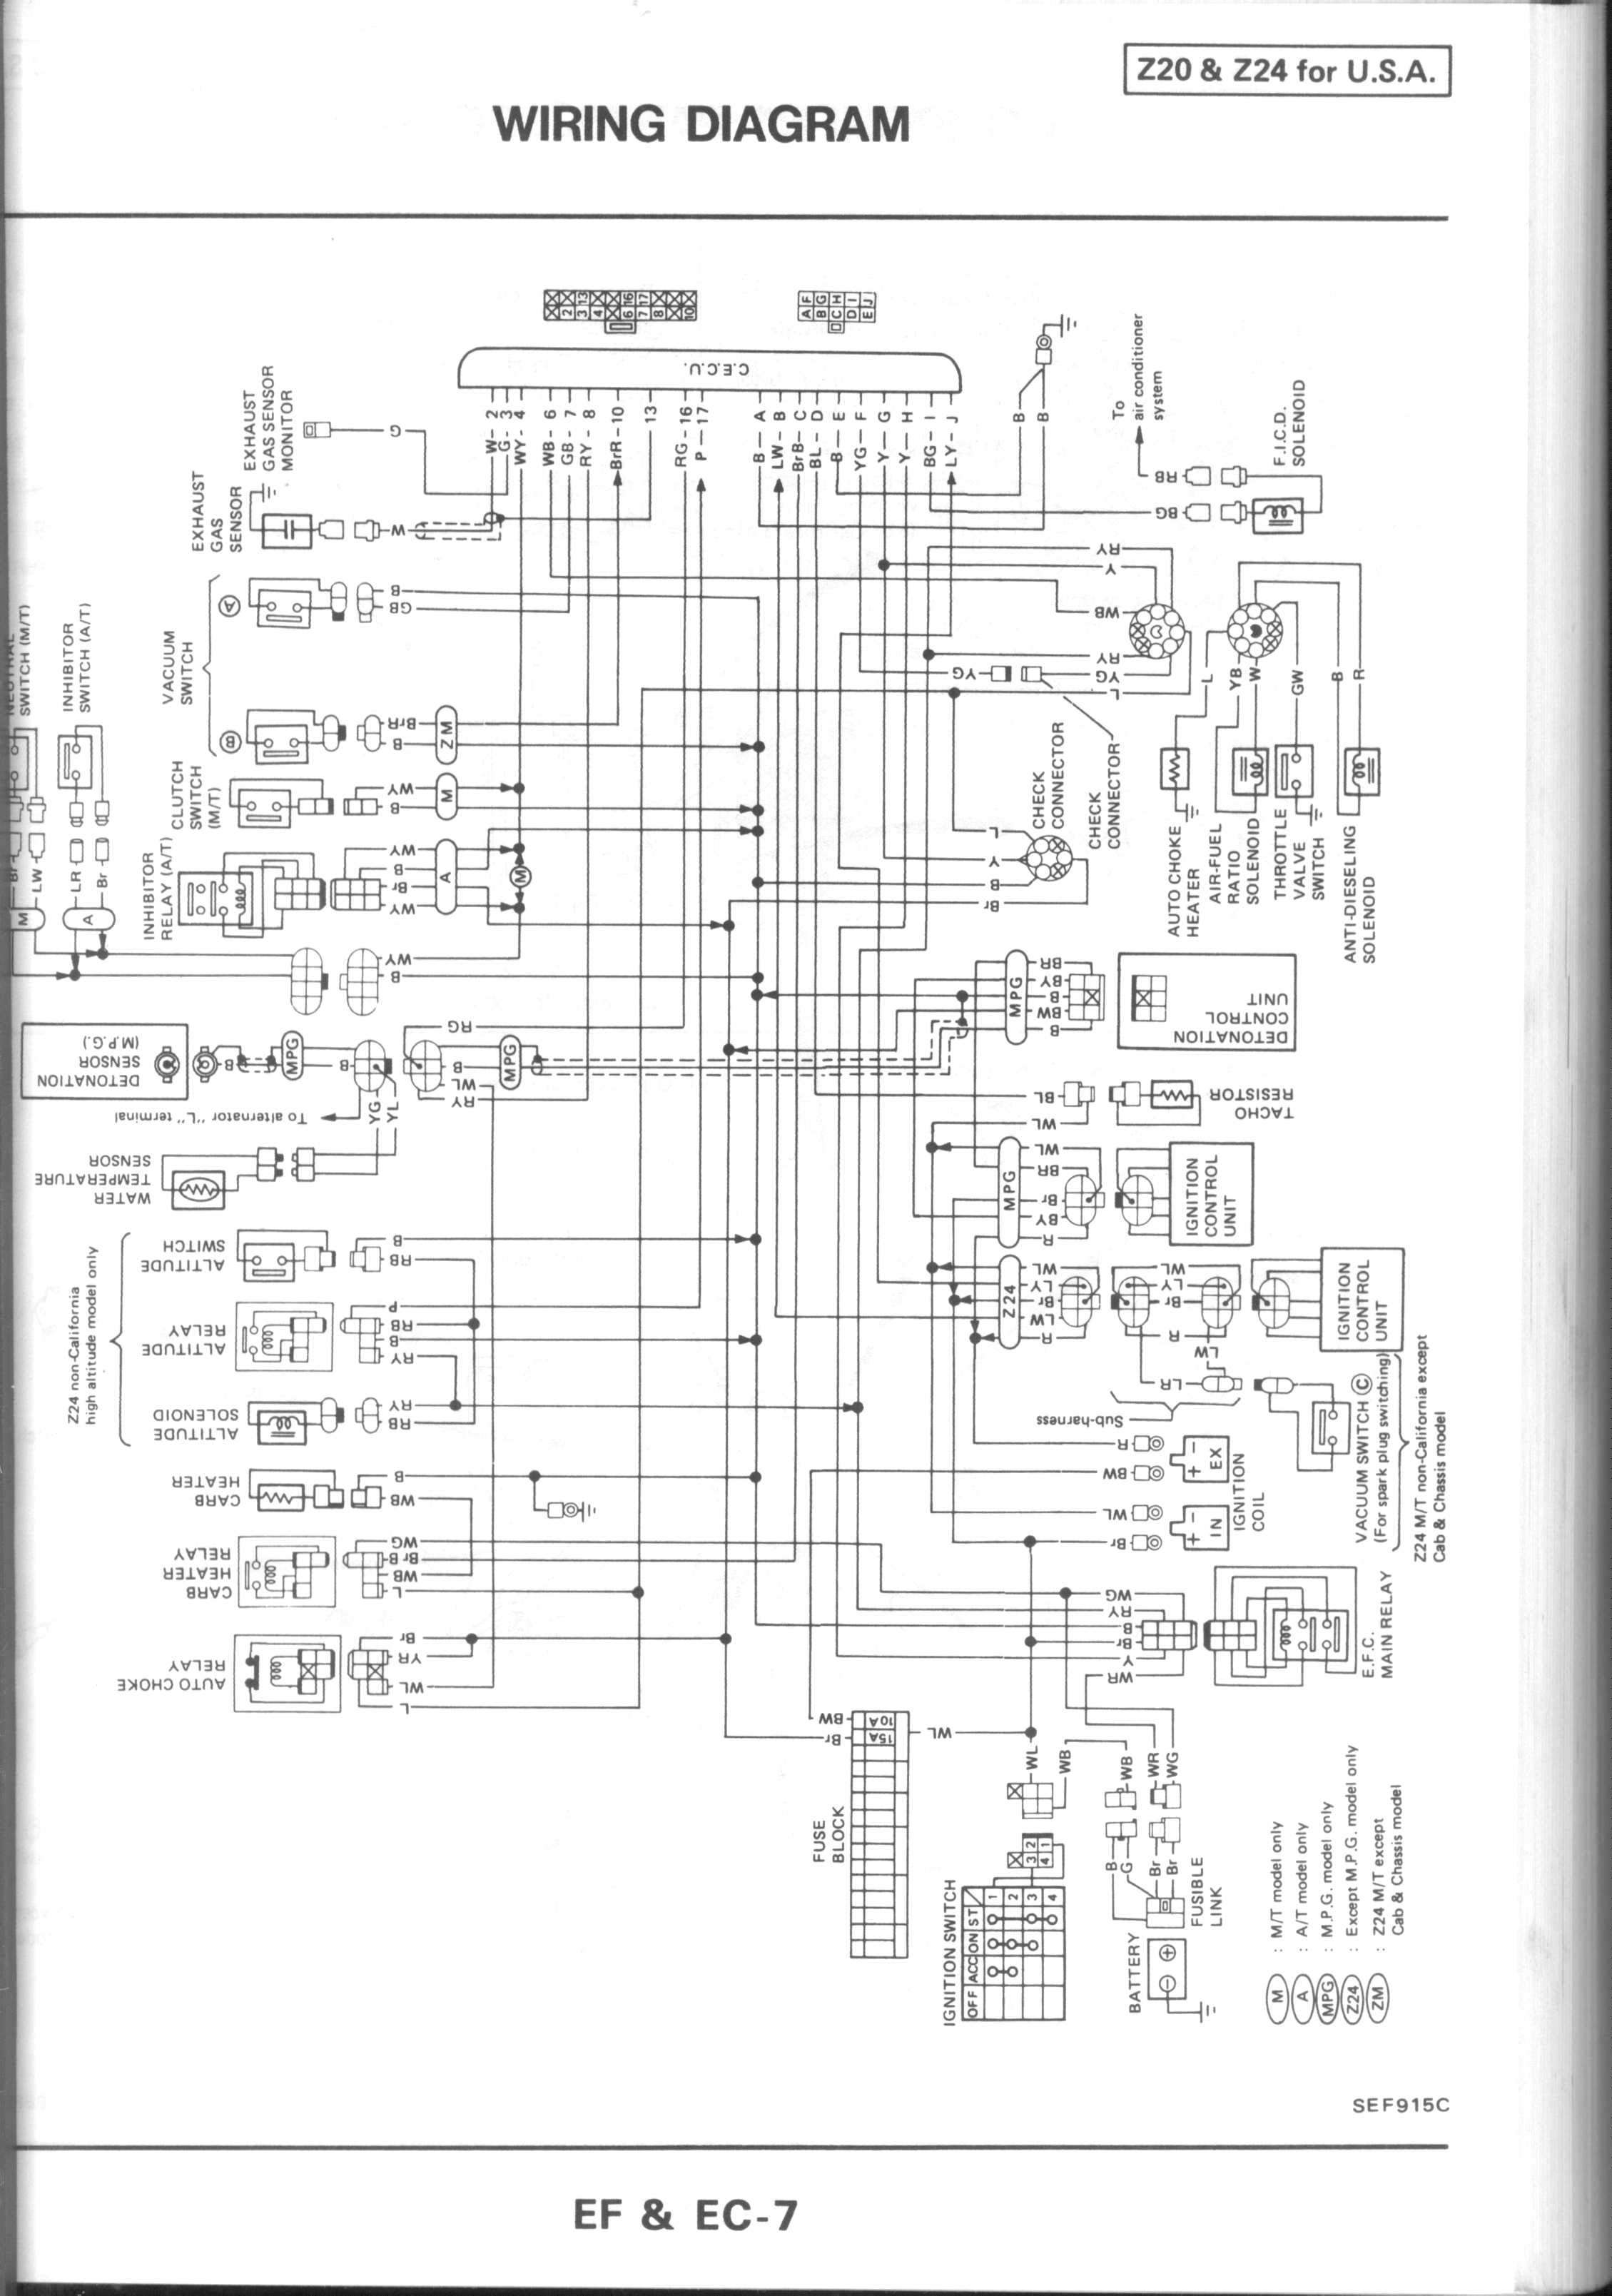 1990 240sx Wiring Diagram Light E63 Fuse Box Jeepe Jimny Bmw In E46 Jeanjaures37 Fr